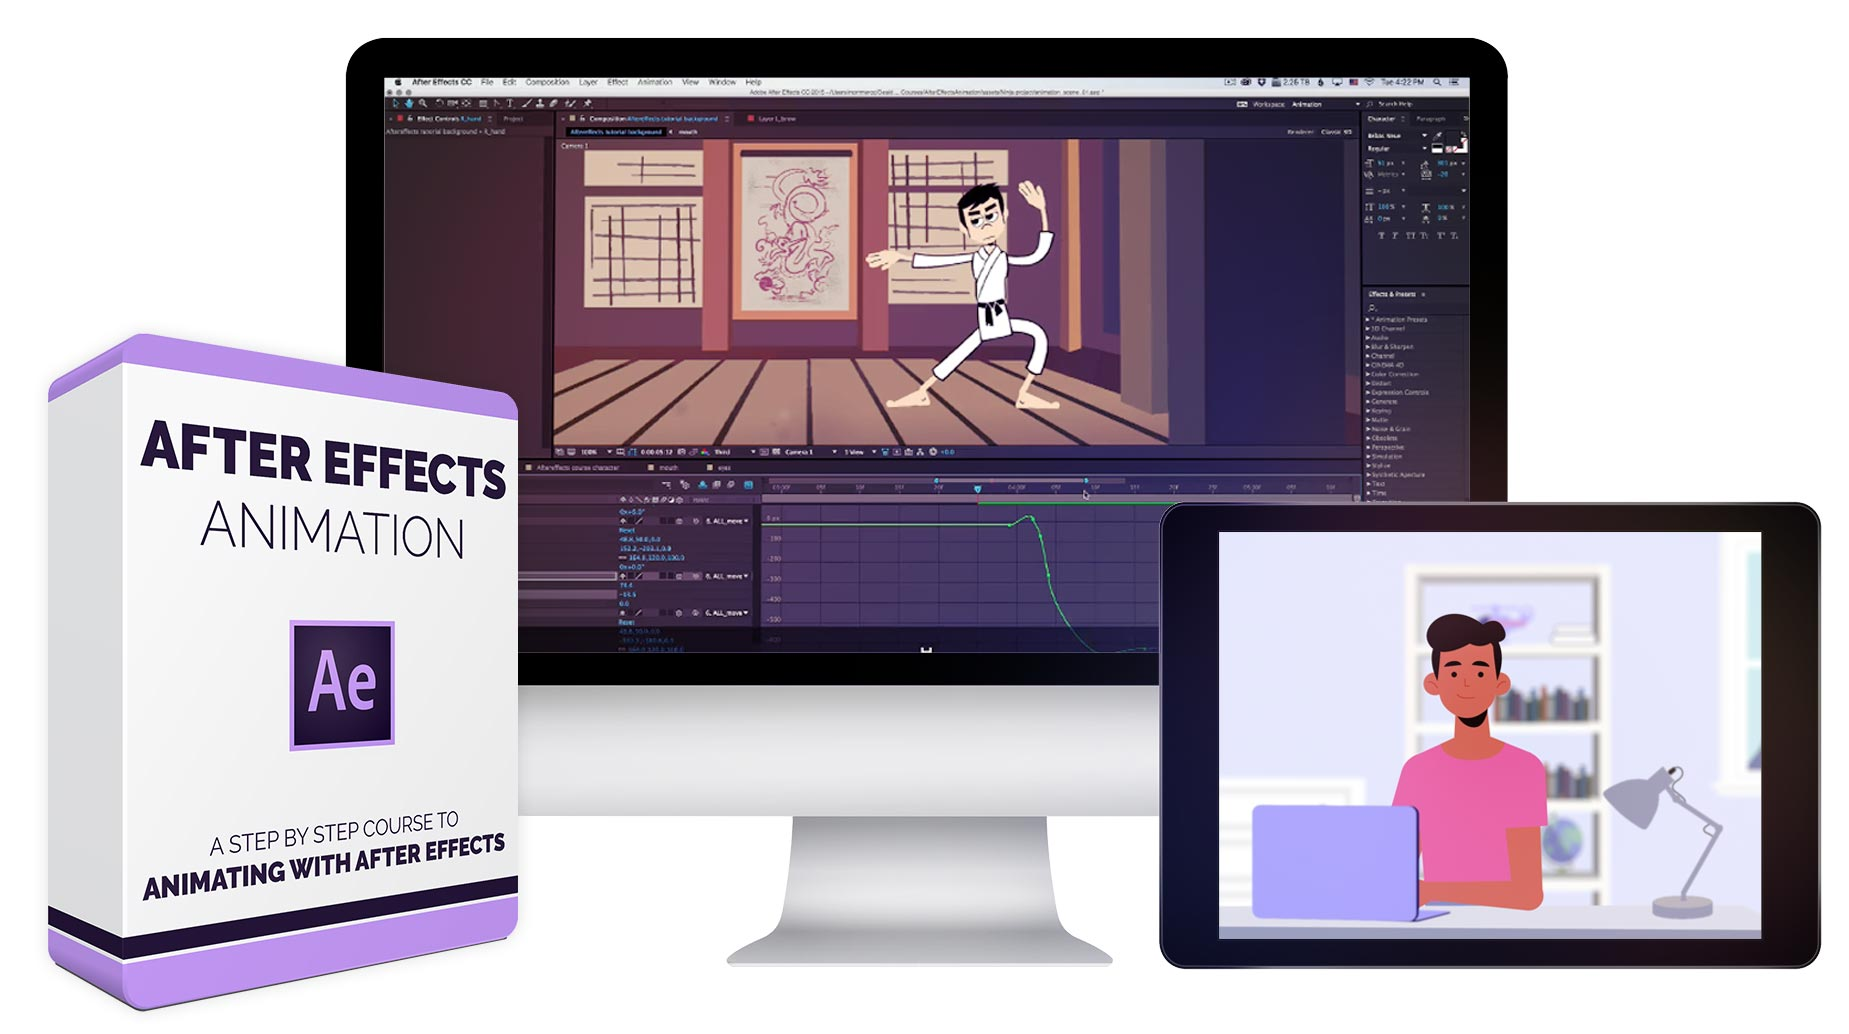 Bloop Animation - After Effects Animation